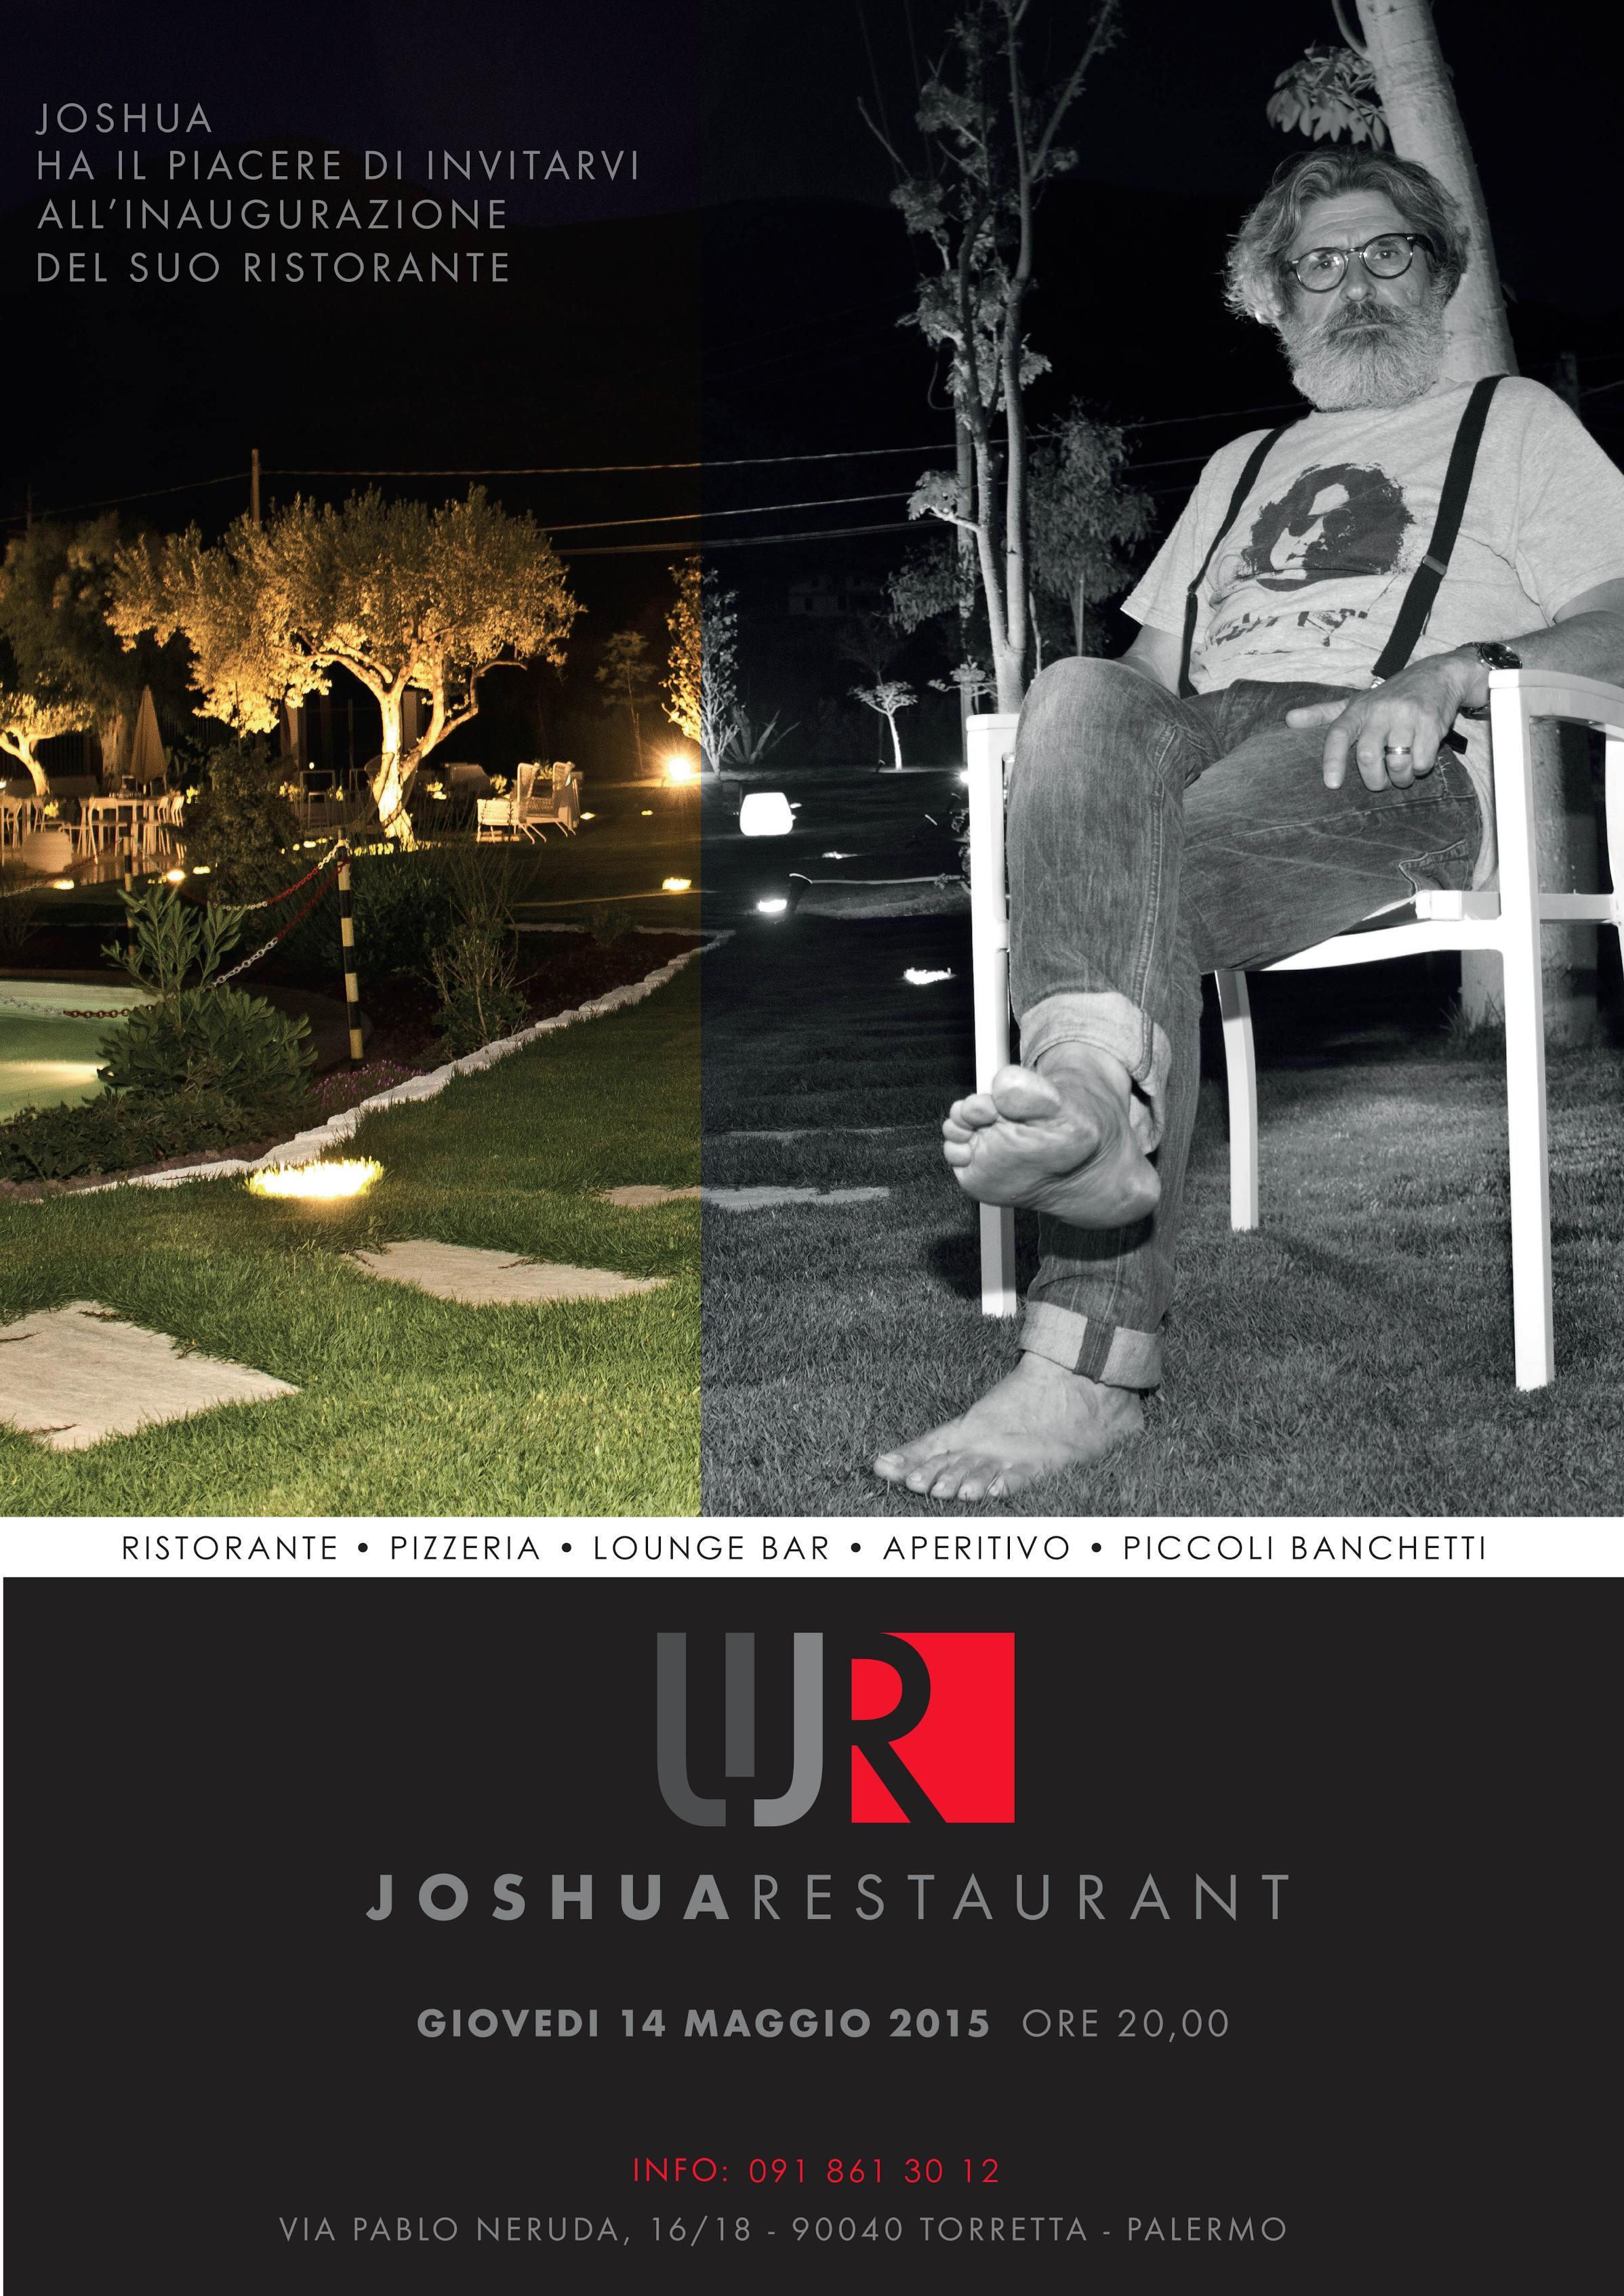 joshua-restaurant-pizzeria-lounge-bar-torretta.1